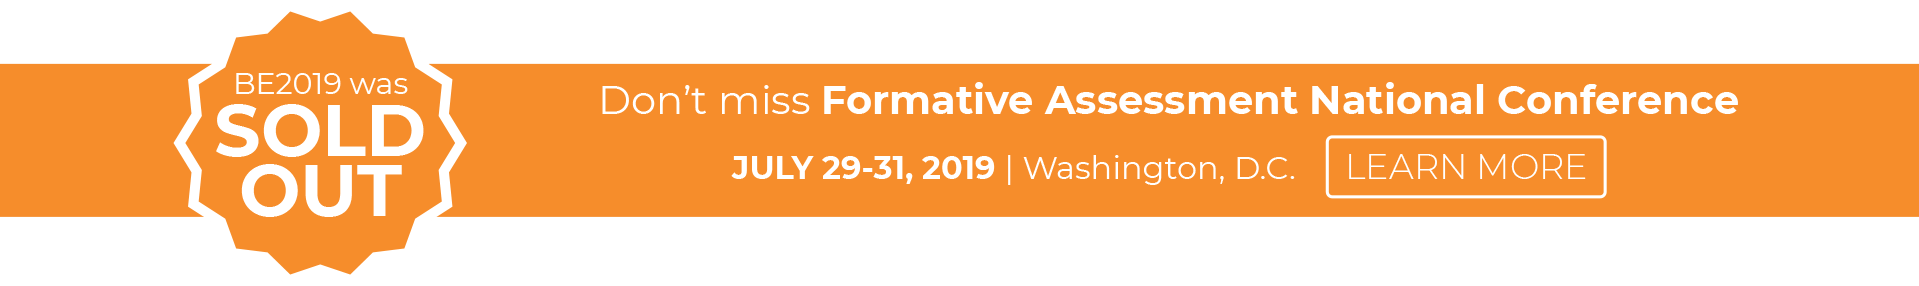 BE2019 was sold out! Don't miss Formative Assessment National Conference - JULY 29-31, 2019 | Washington, D.C. - Click Here